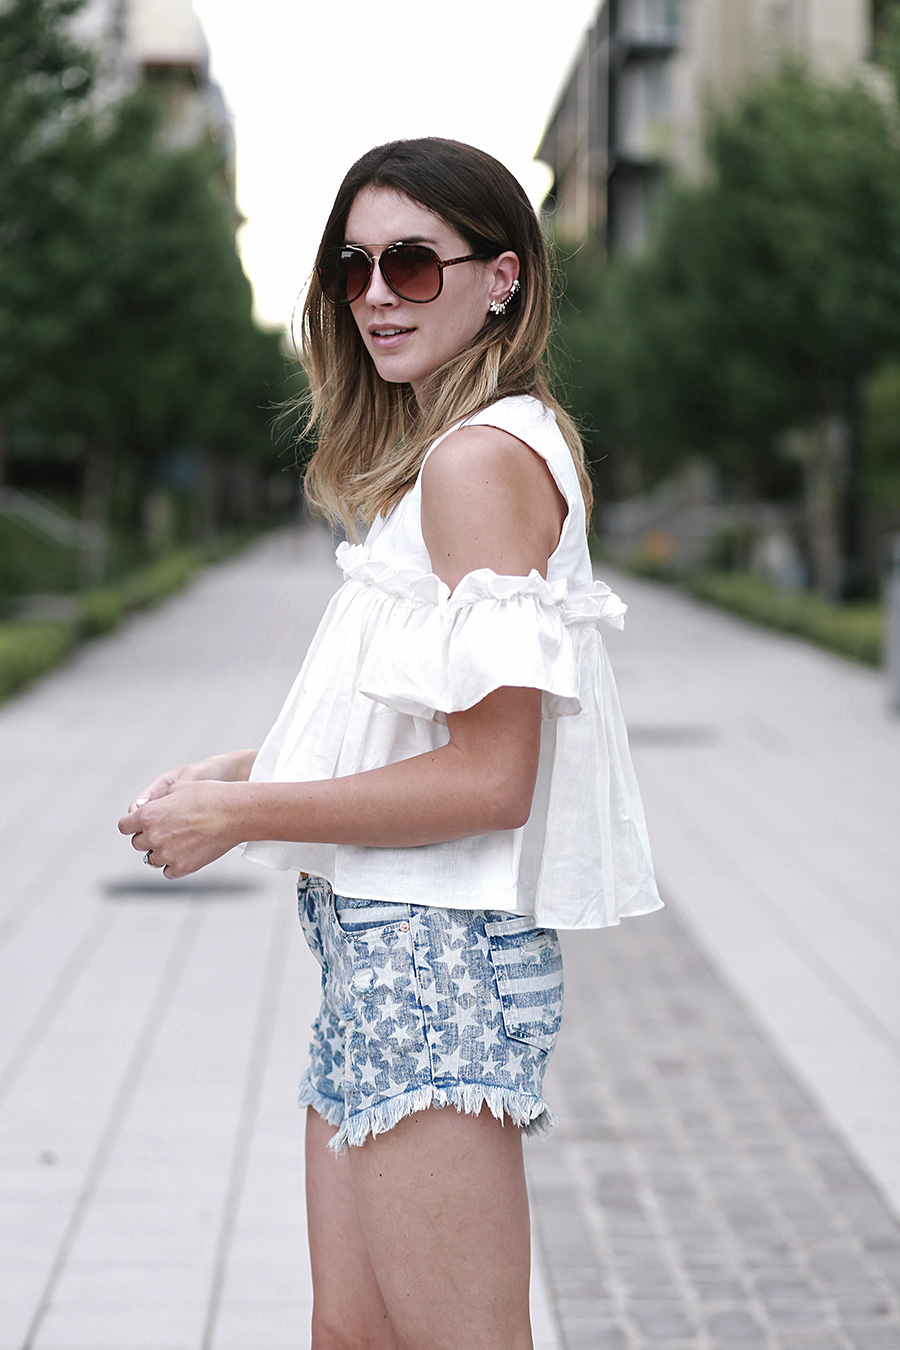 pixie market white top target star shorts sam and libby gladiator sandals 8